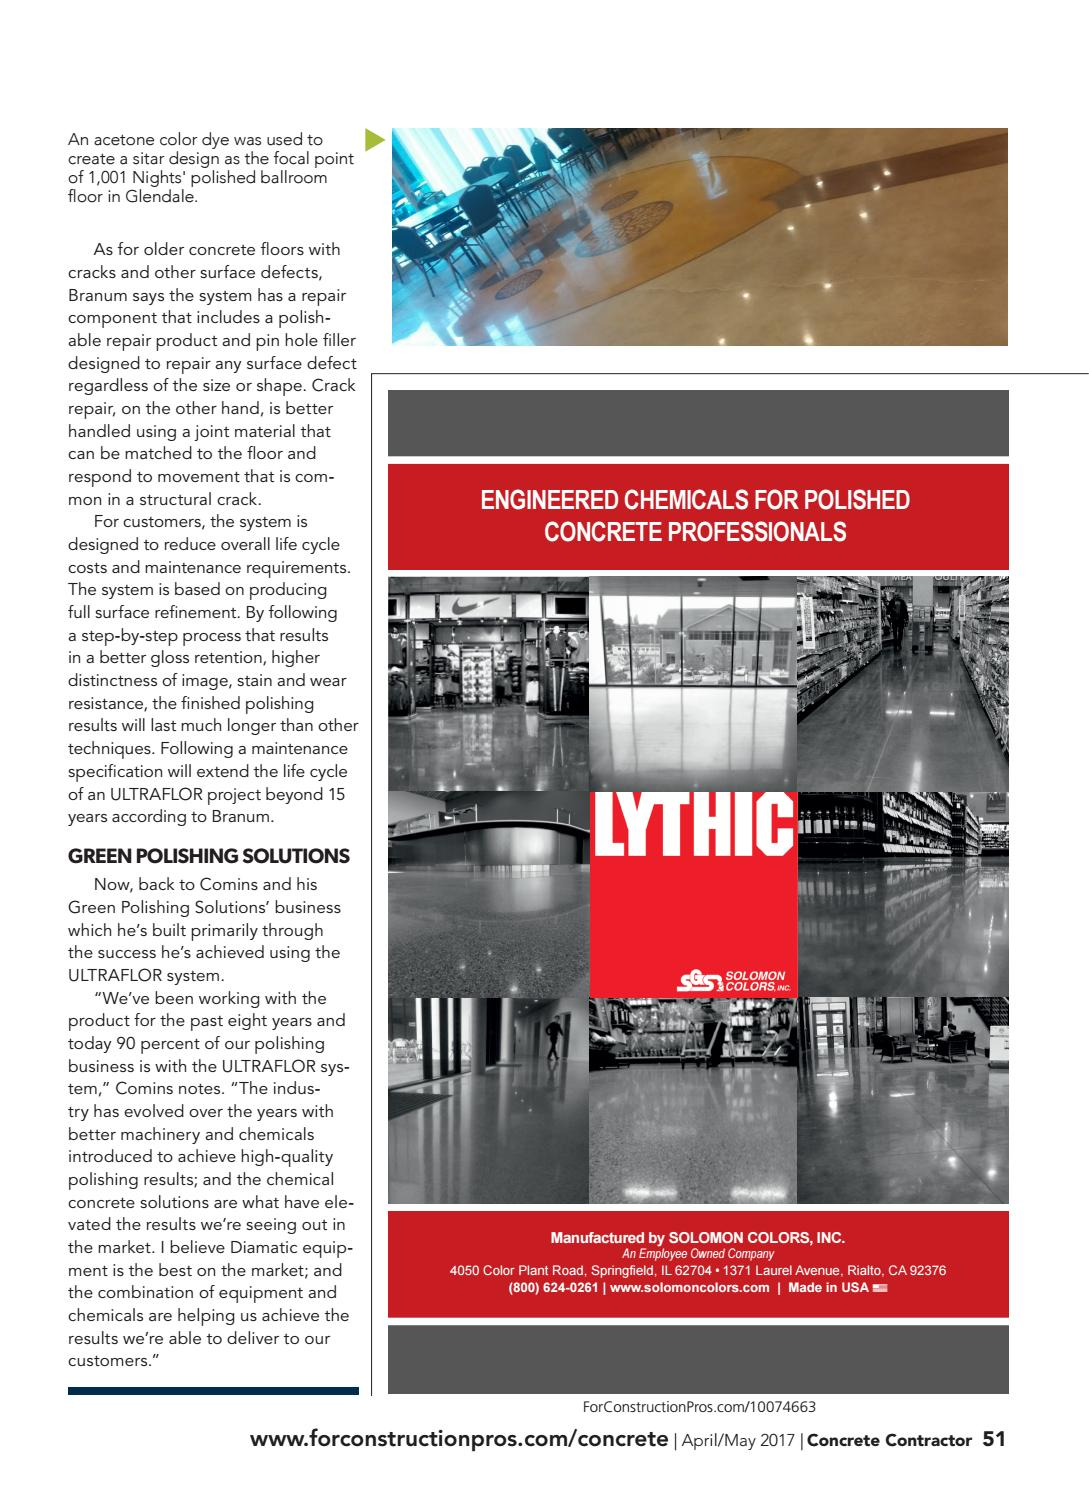 Concrete Contractor Aprilmay 2017 By Forconstructionproscom Issuu